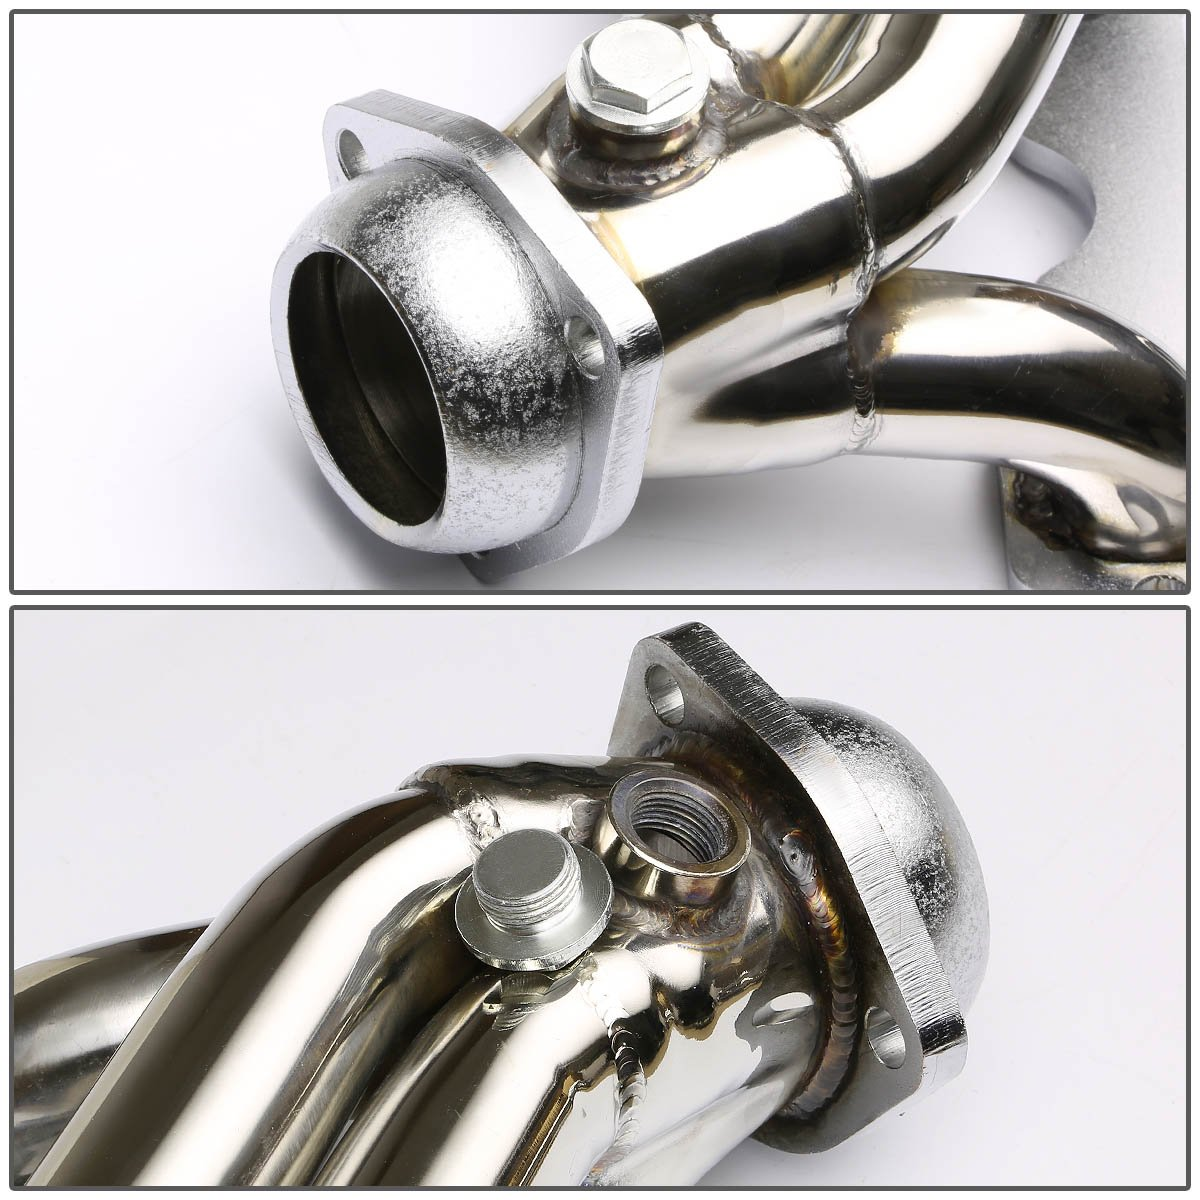 DNA Motoring HDSGMC85T2 Stainless Steel Exhaust Header Manifold